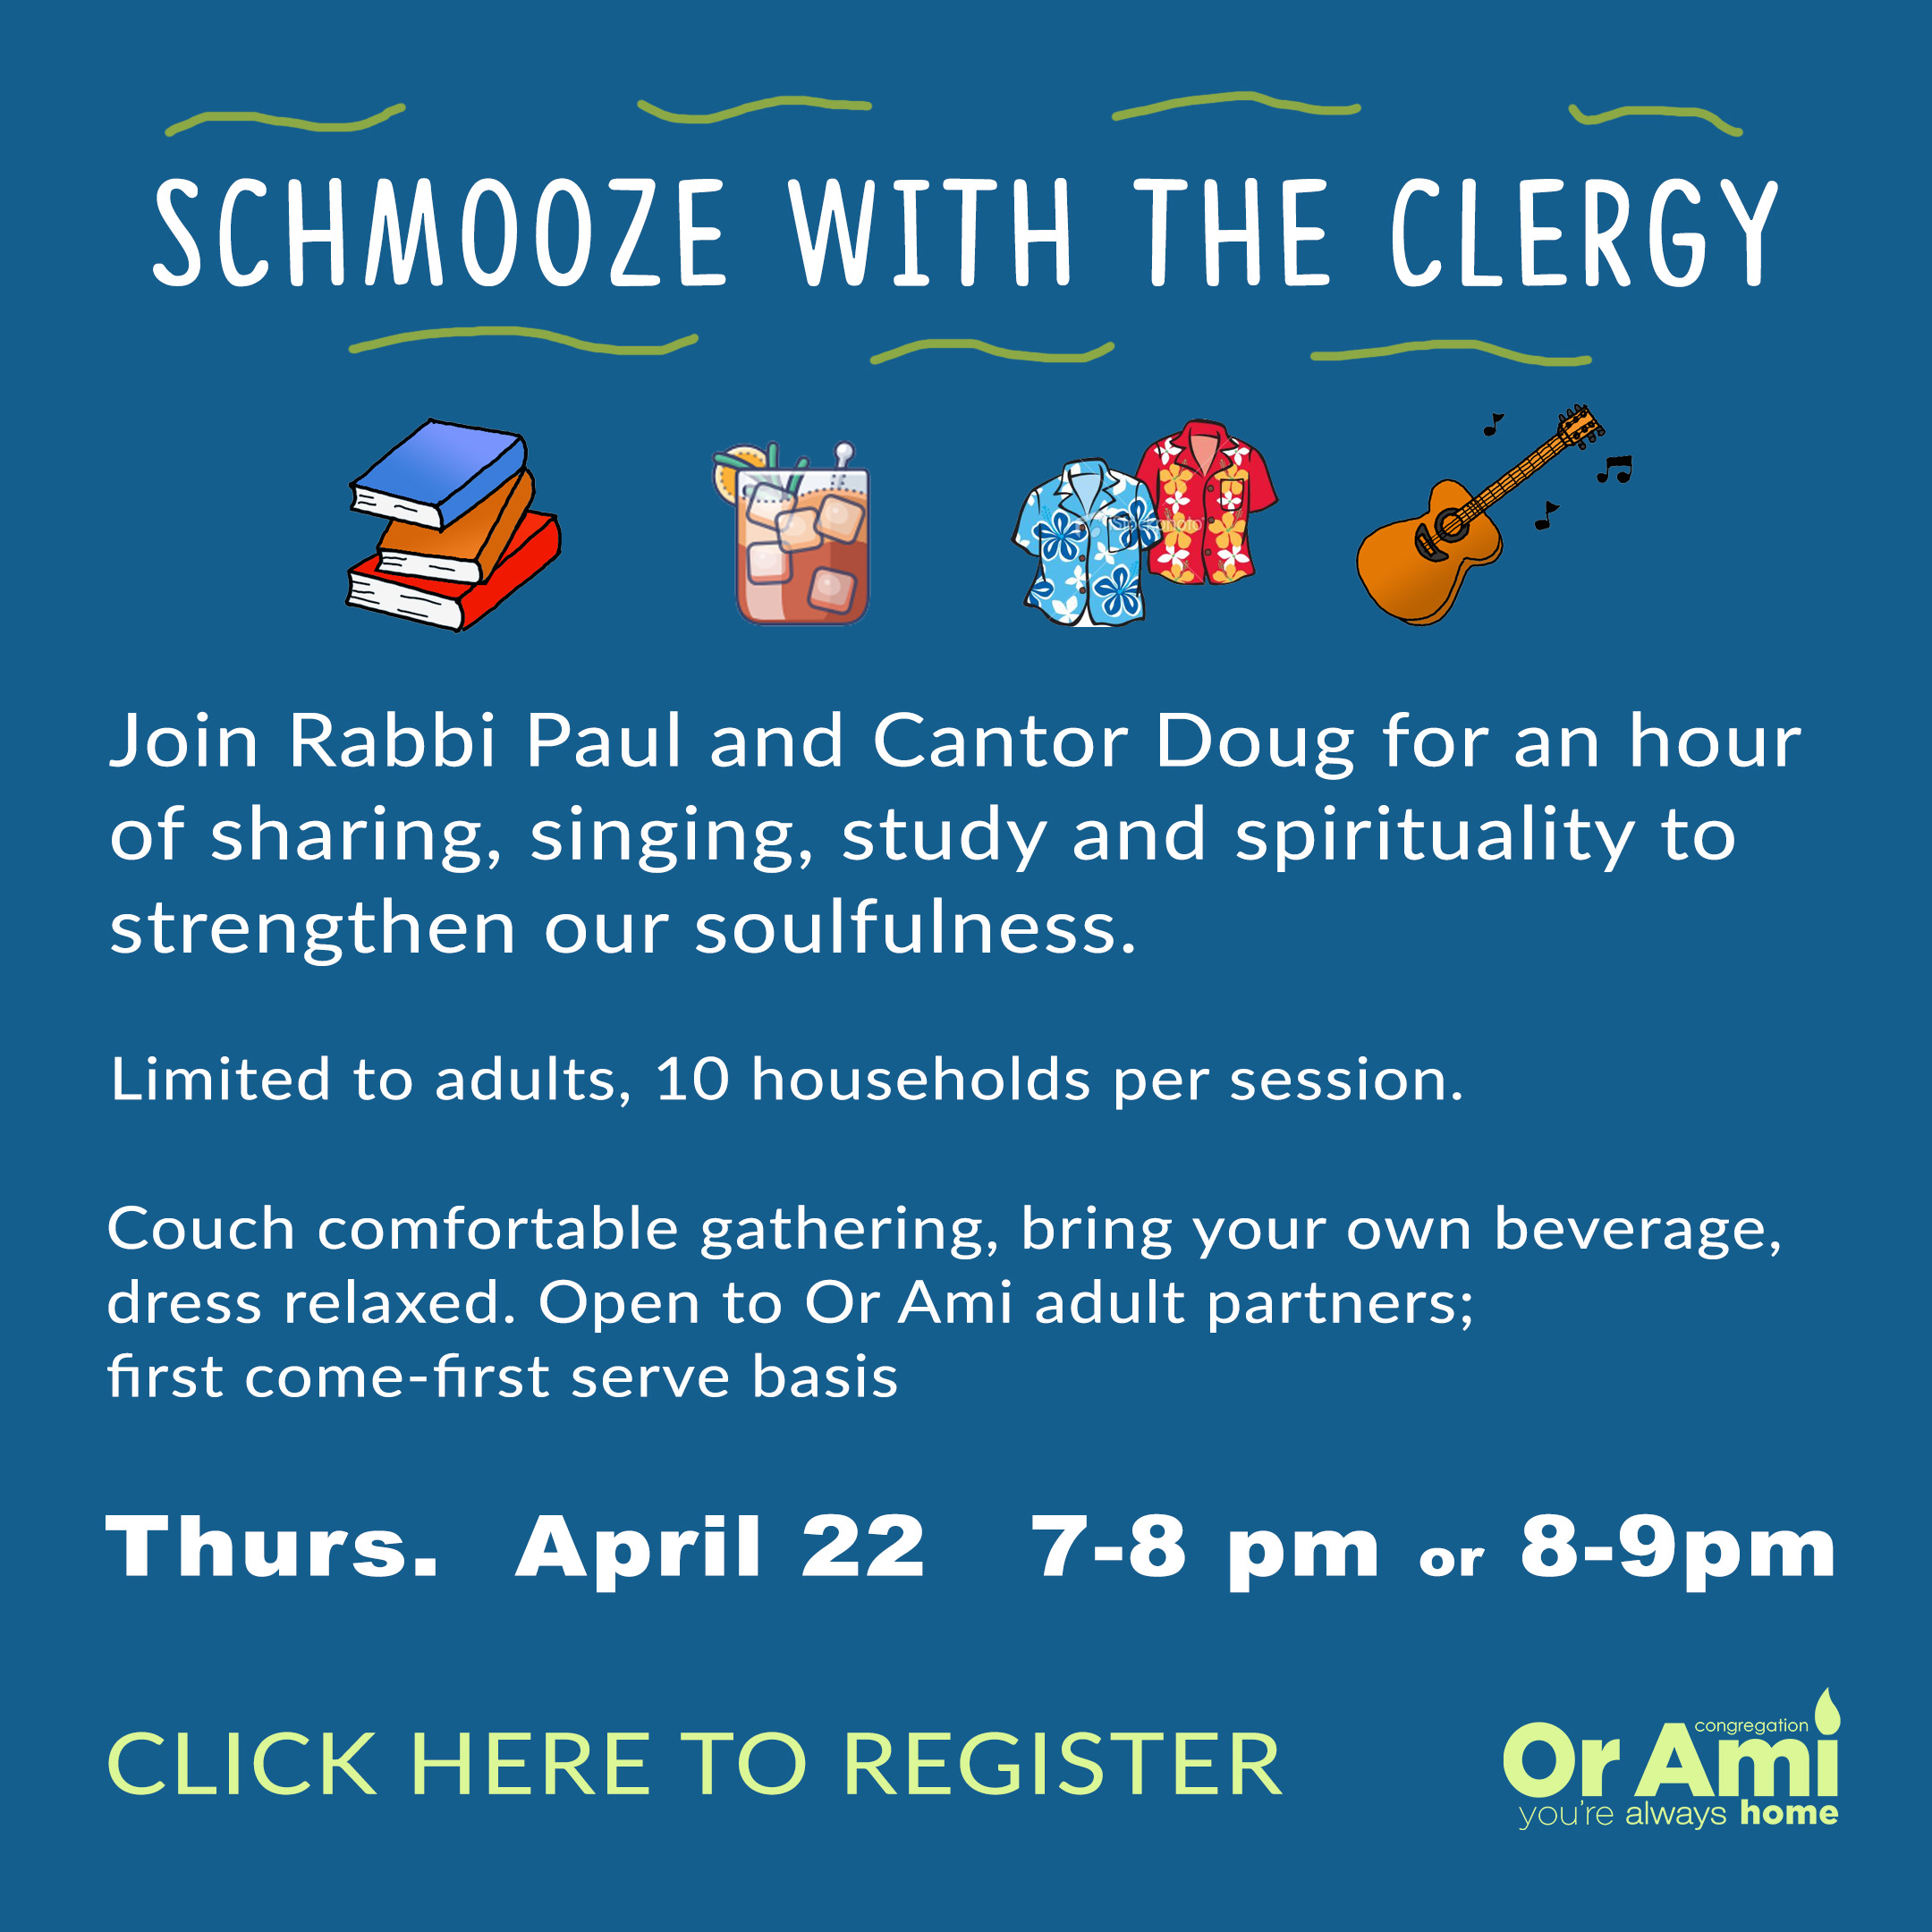 schmooze with the clergy April with CLICK